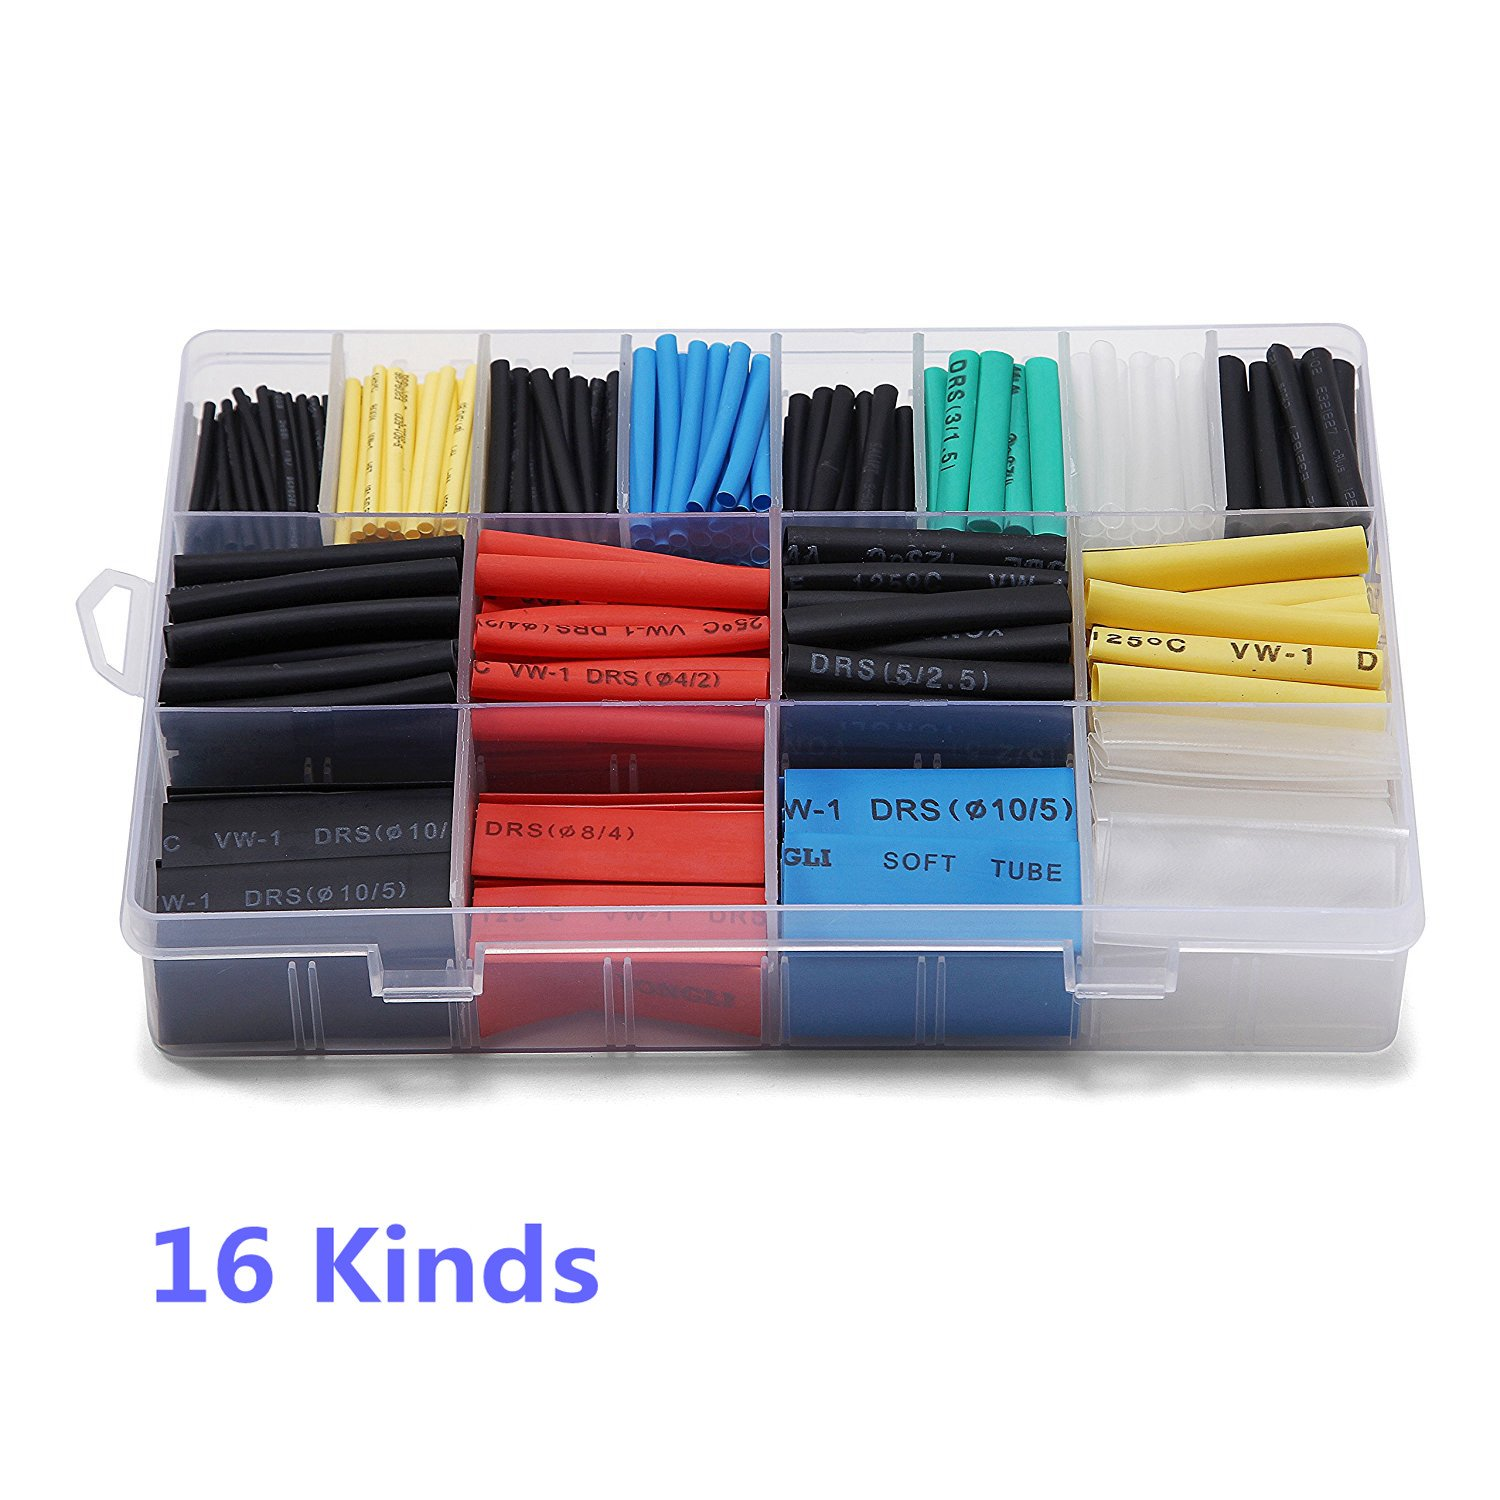 Ginsco 580 pcs 2:1 Heat Shrink Tube 6 Colors 11 Sizes Tubing Set Combo Assorted Sleeving Wrap Cable Wire Kit for DIY